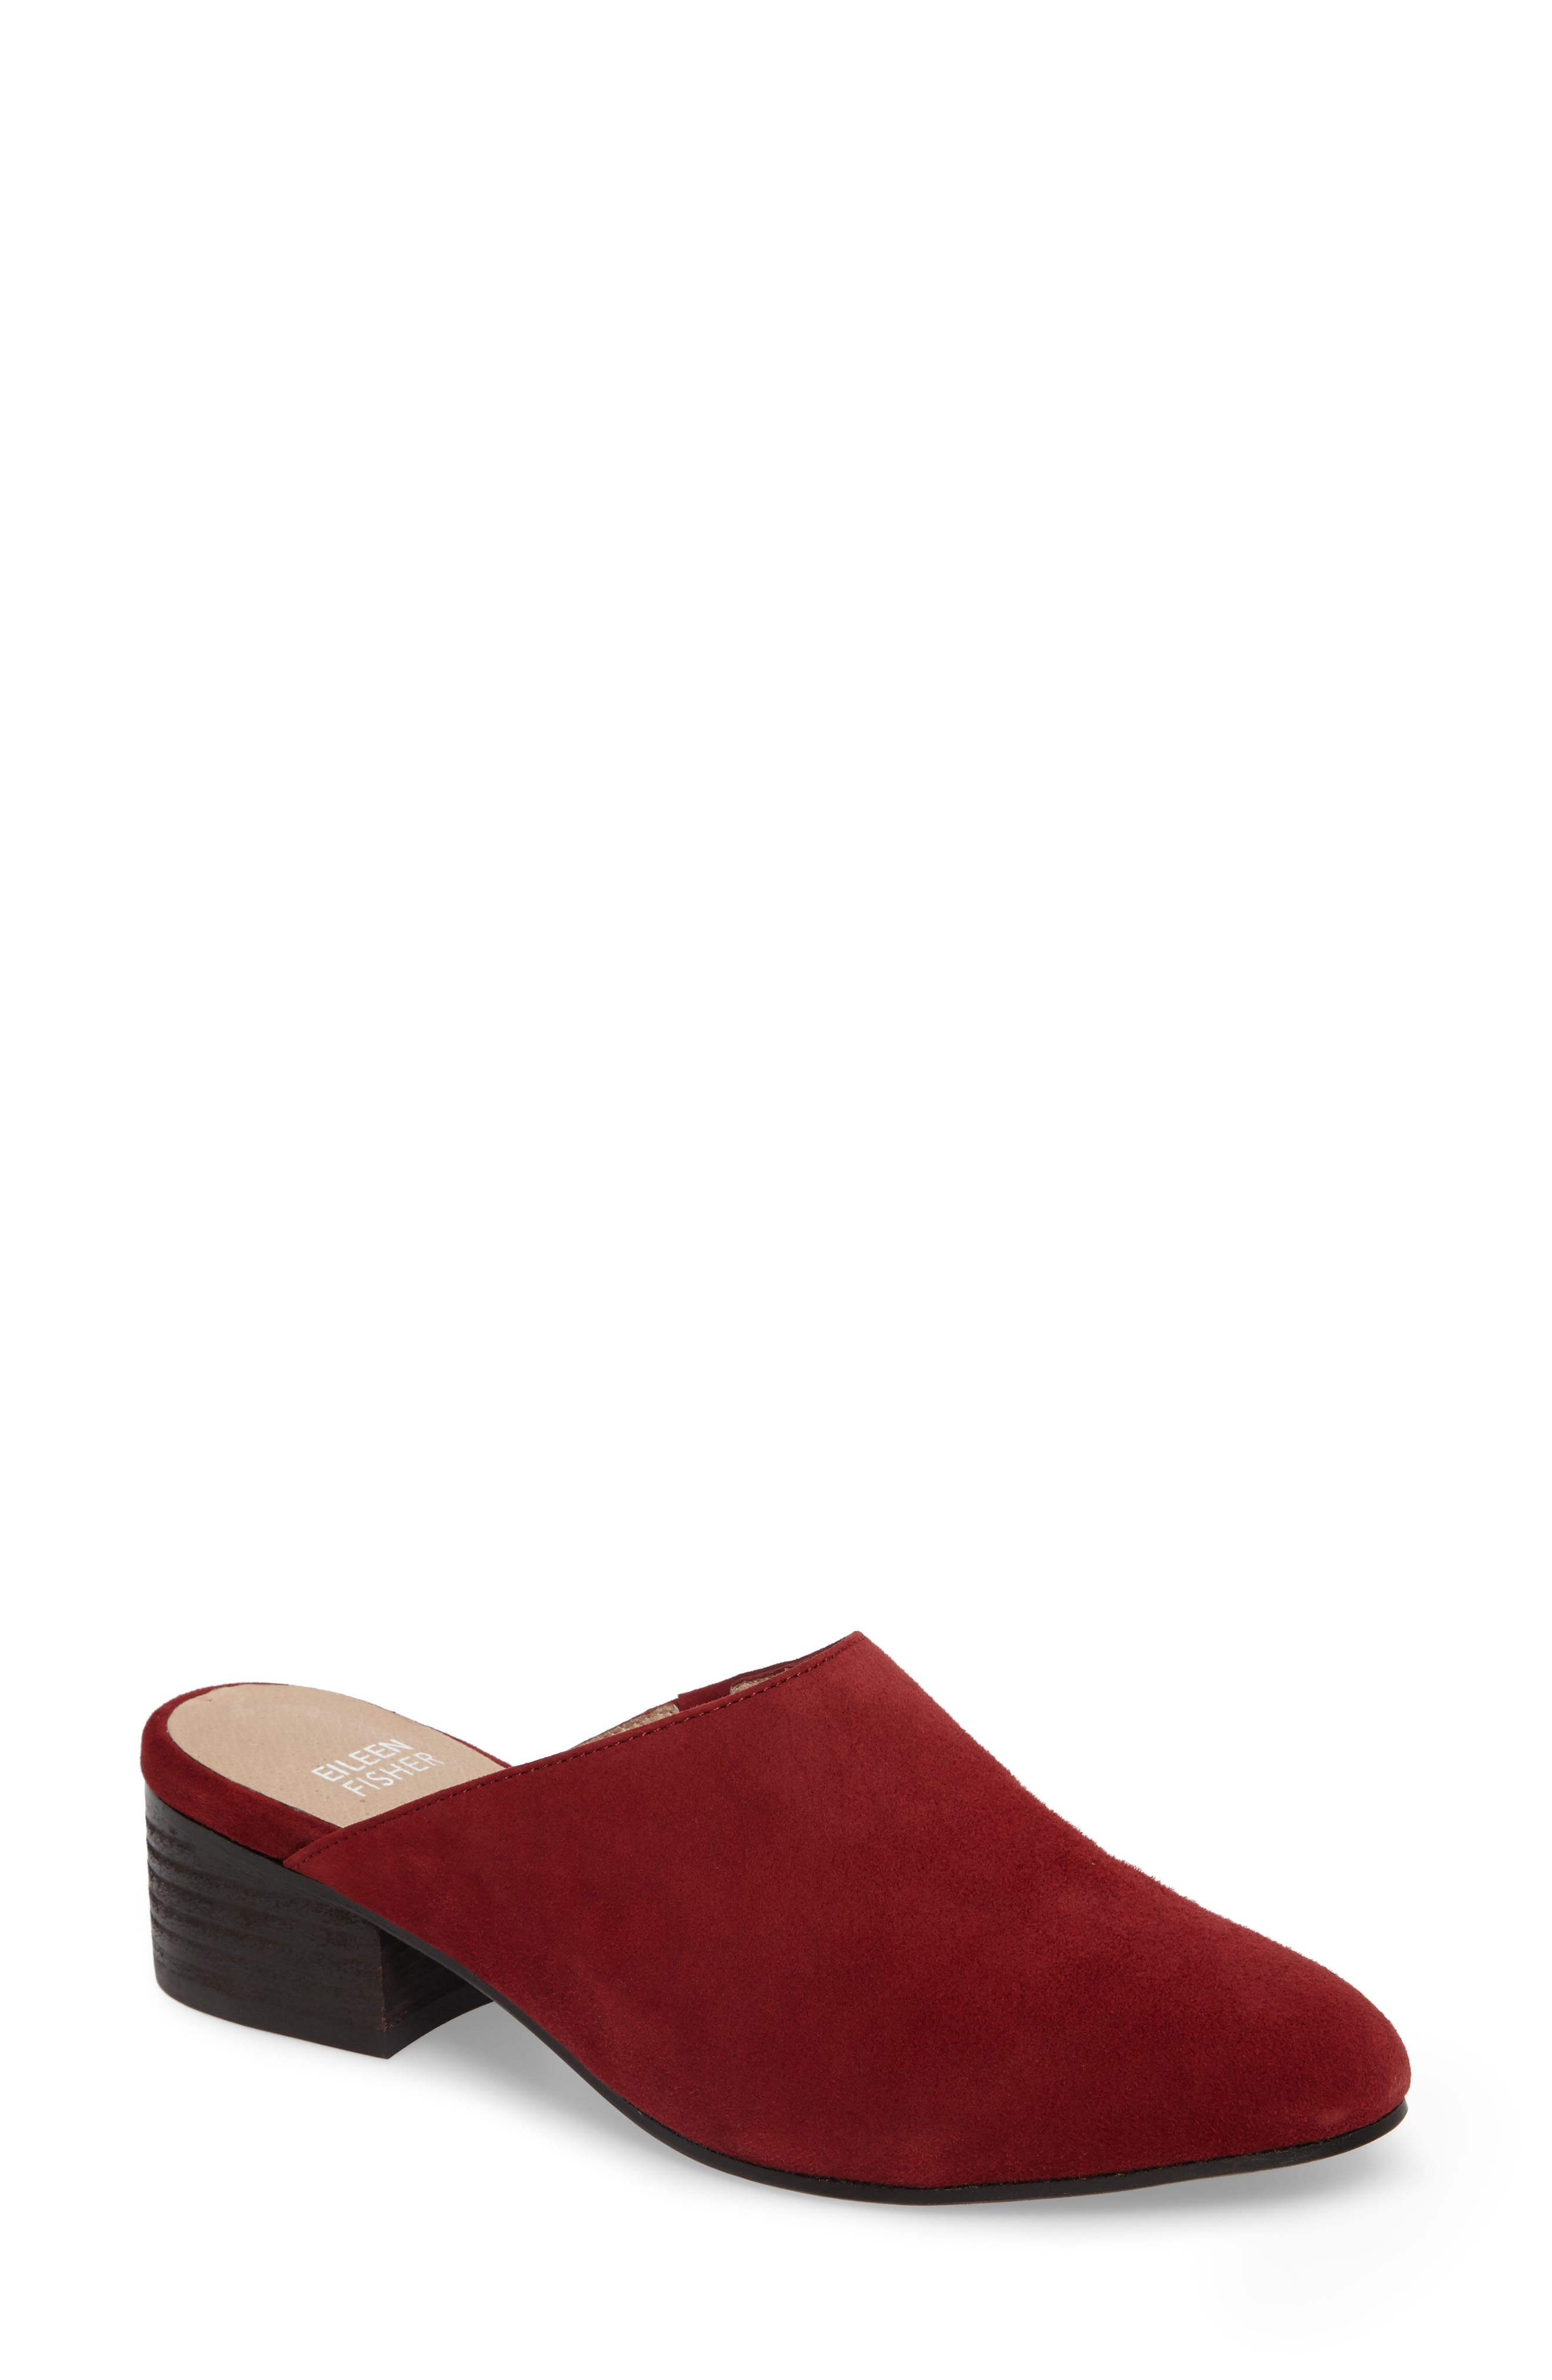 Alternate Image 1 Selected - Eileen Fisher Silvia Mule (Women)